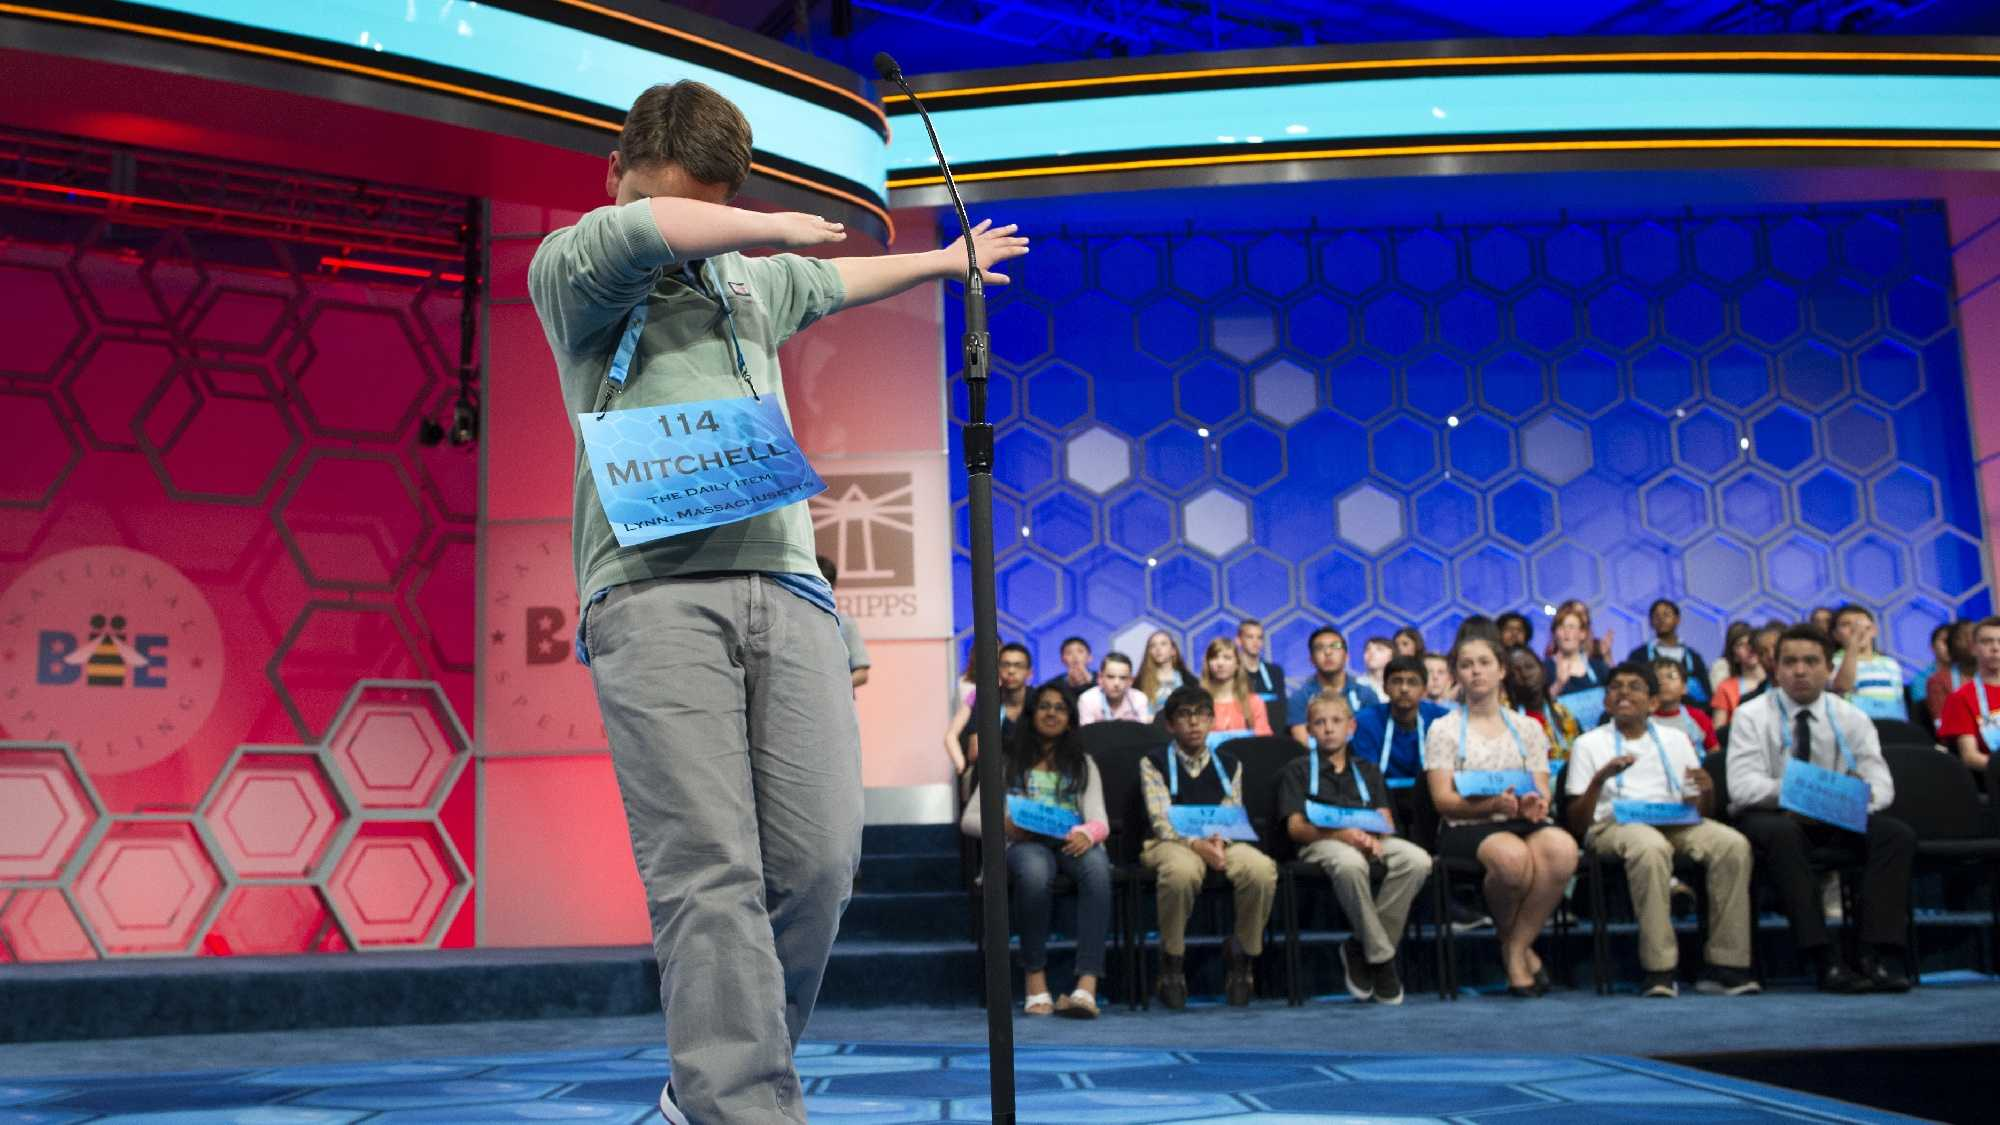 Mitchell Robson, 14, of Danvers, Mass., steps backwards while celebrating correctly spelling his word during the preliminary round three of the Scripps National Spelling Bee in National Harbor, Md., Wednesday, May 25, 2016.